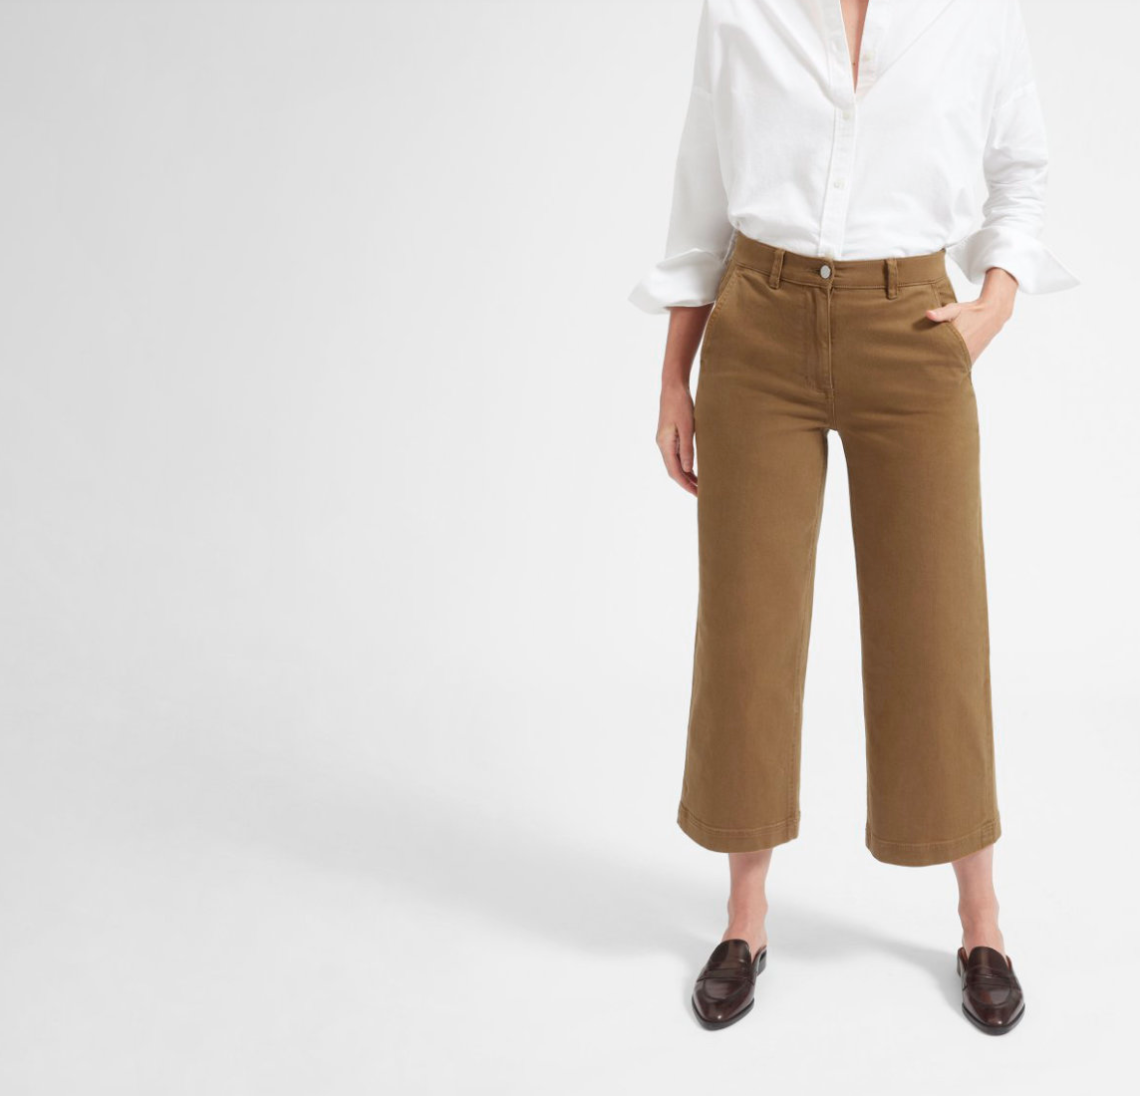 Top US fashion blogger, Wellesley & King, shares favorites by Ethical Fashion Brand Everlane: everlane wide leg crop